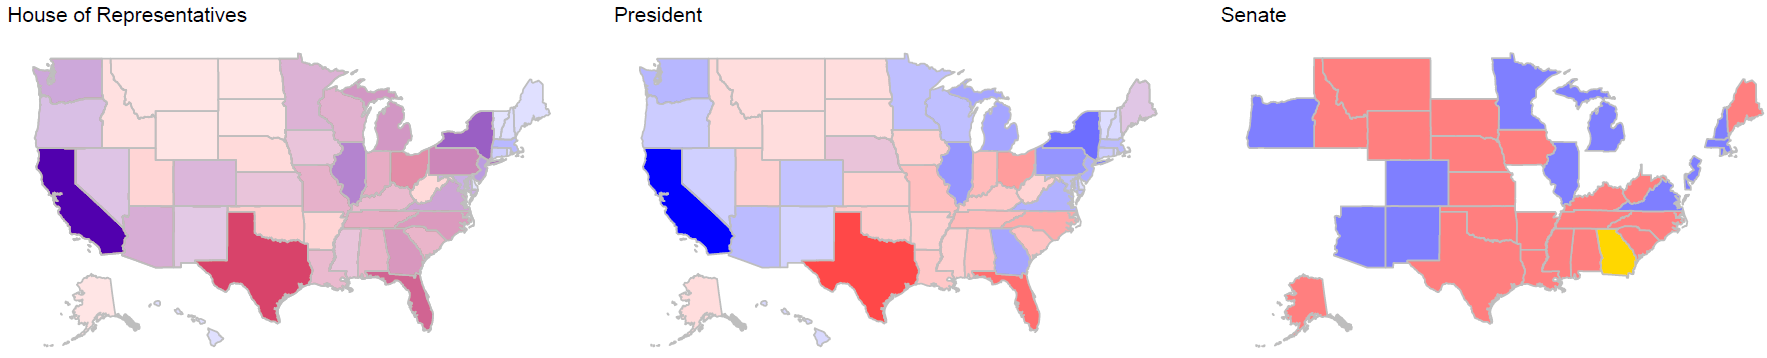 Colored maps showing the results of the 2020 elections for Congress and the President.